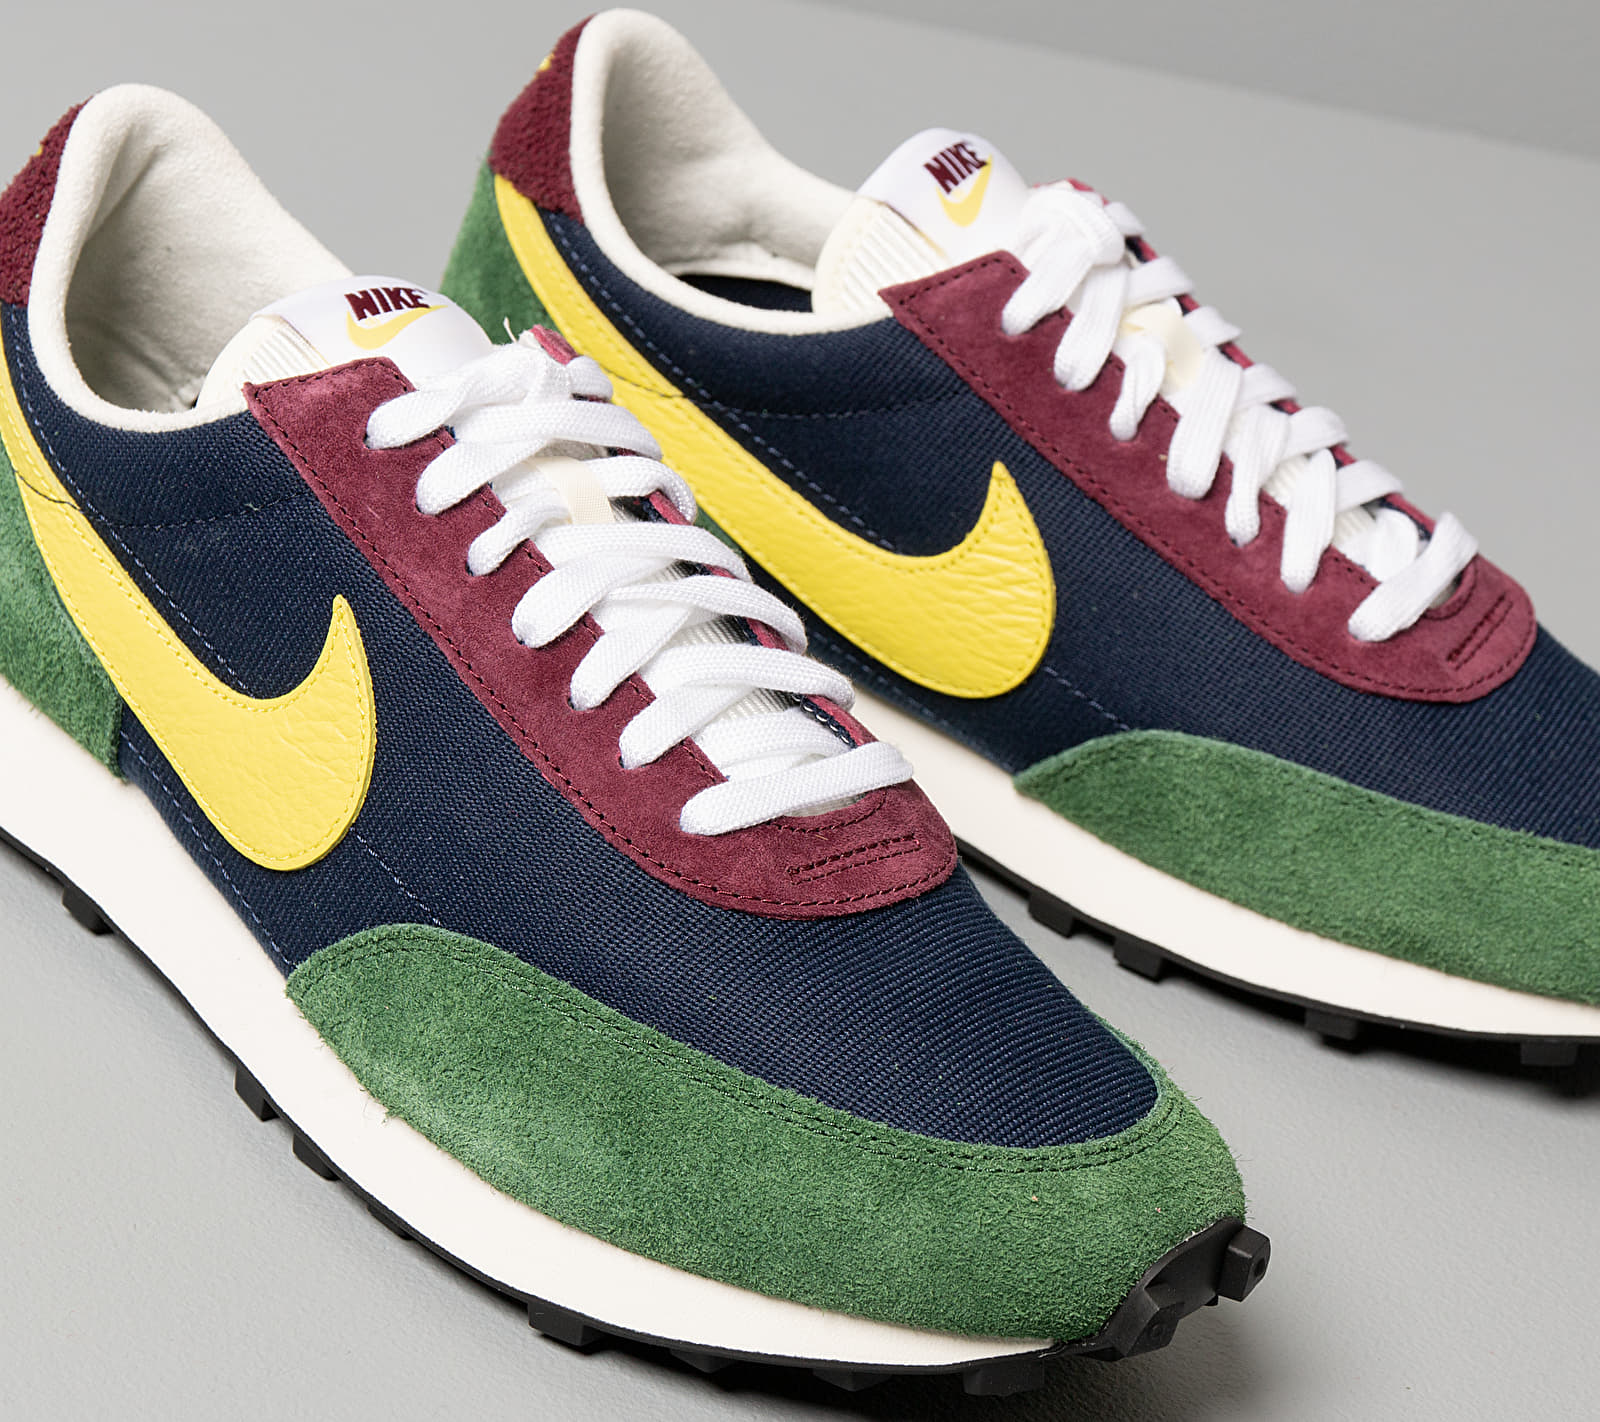 Nike Daybreak Obsidian/ Dynamic Yellow-Cosmic Bonsai, Multicolour